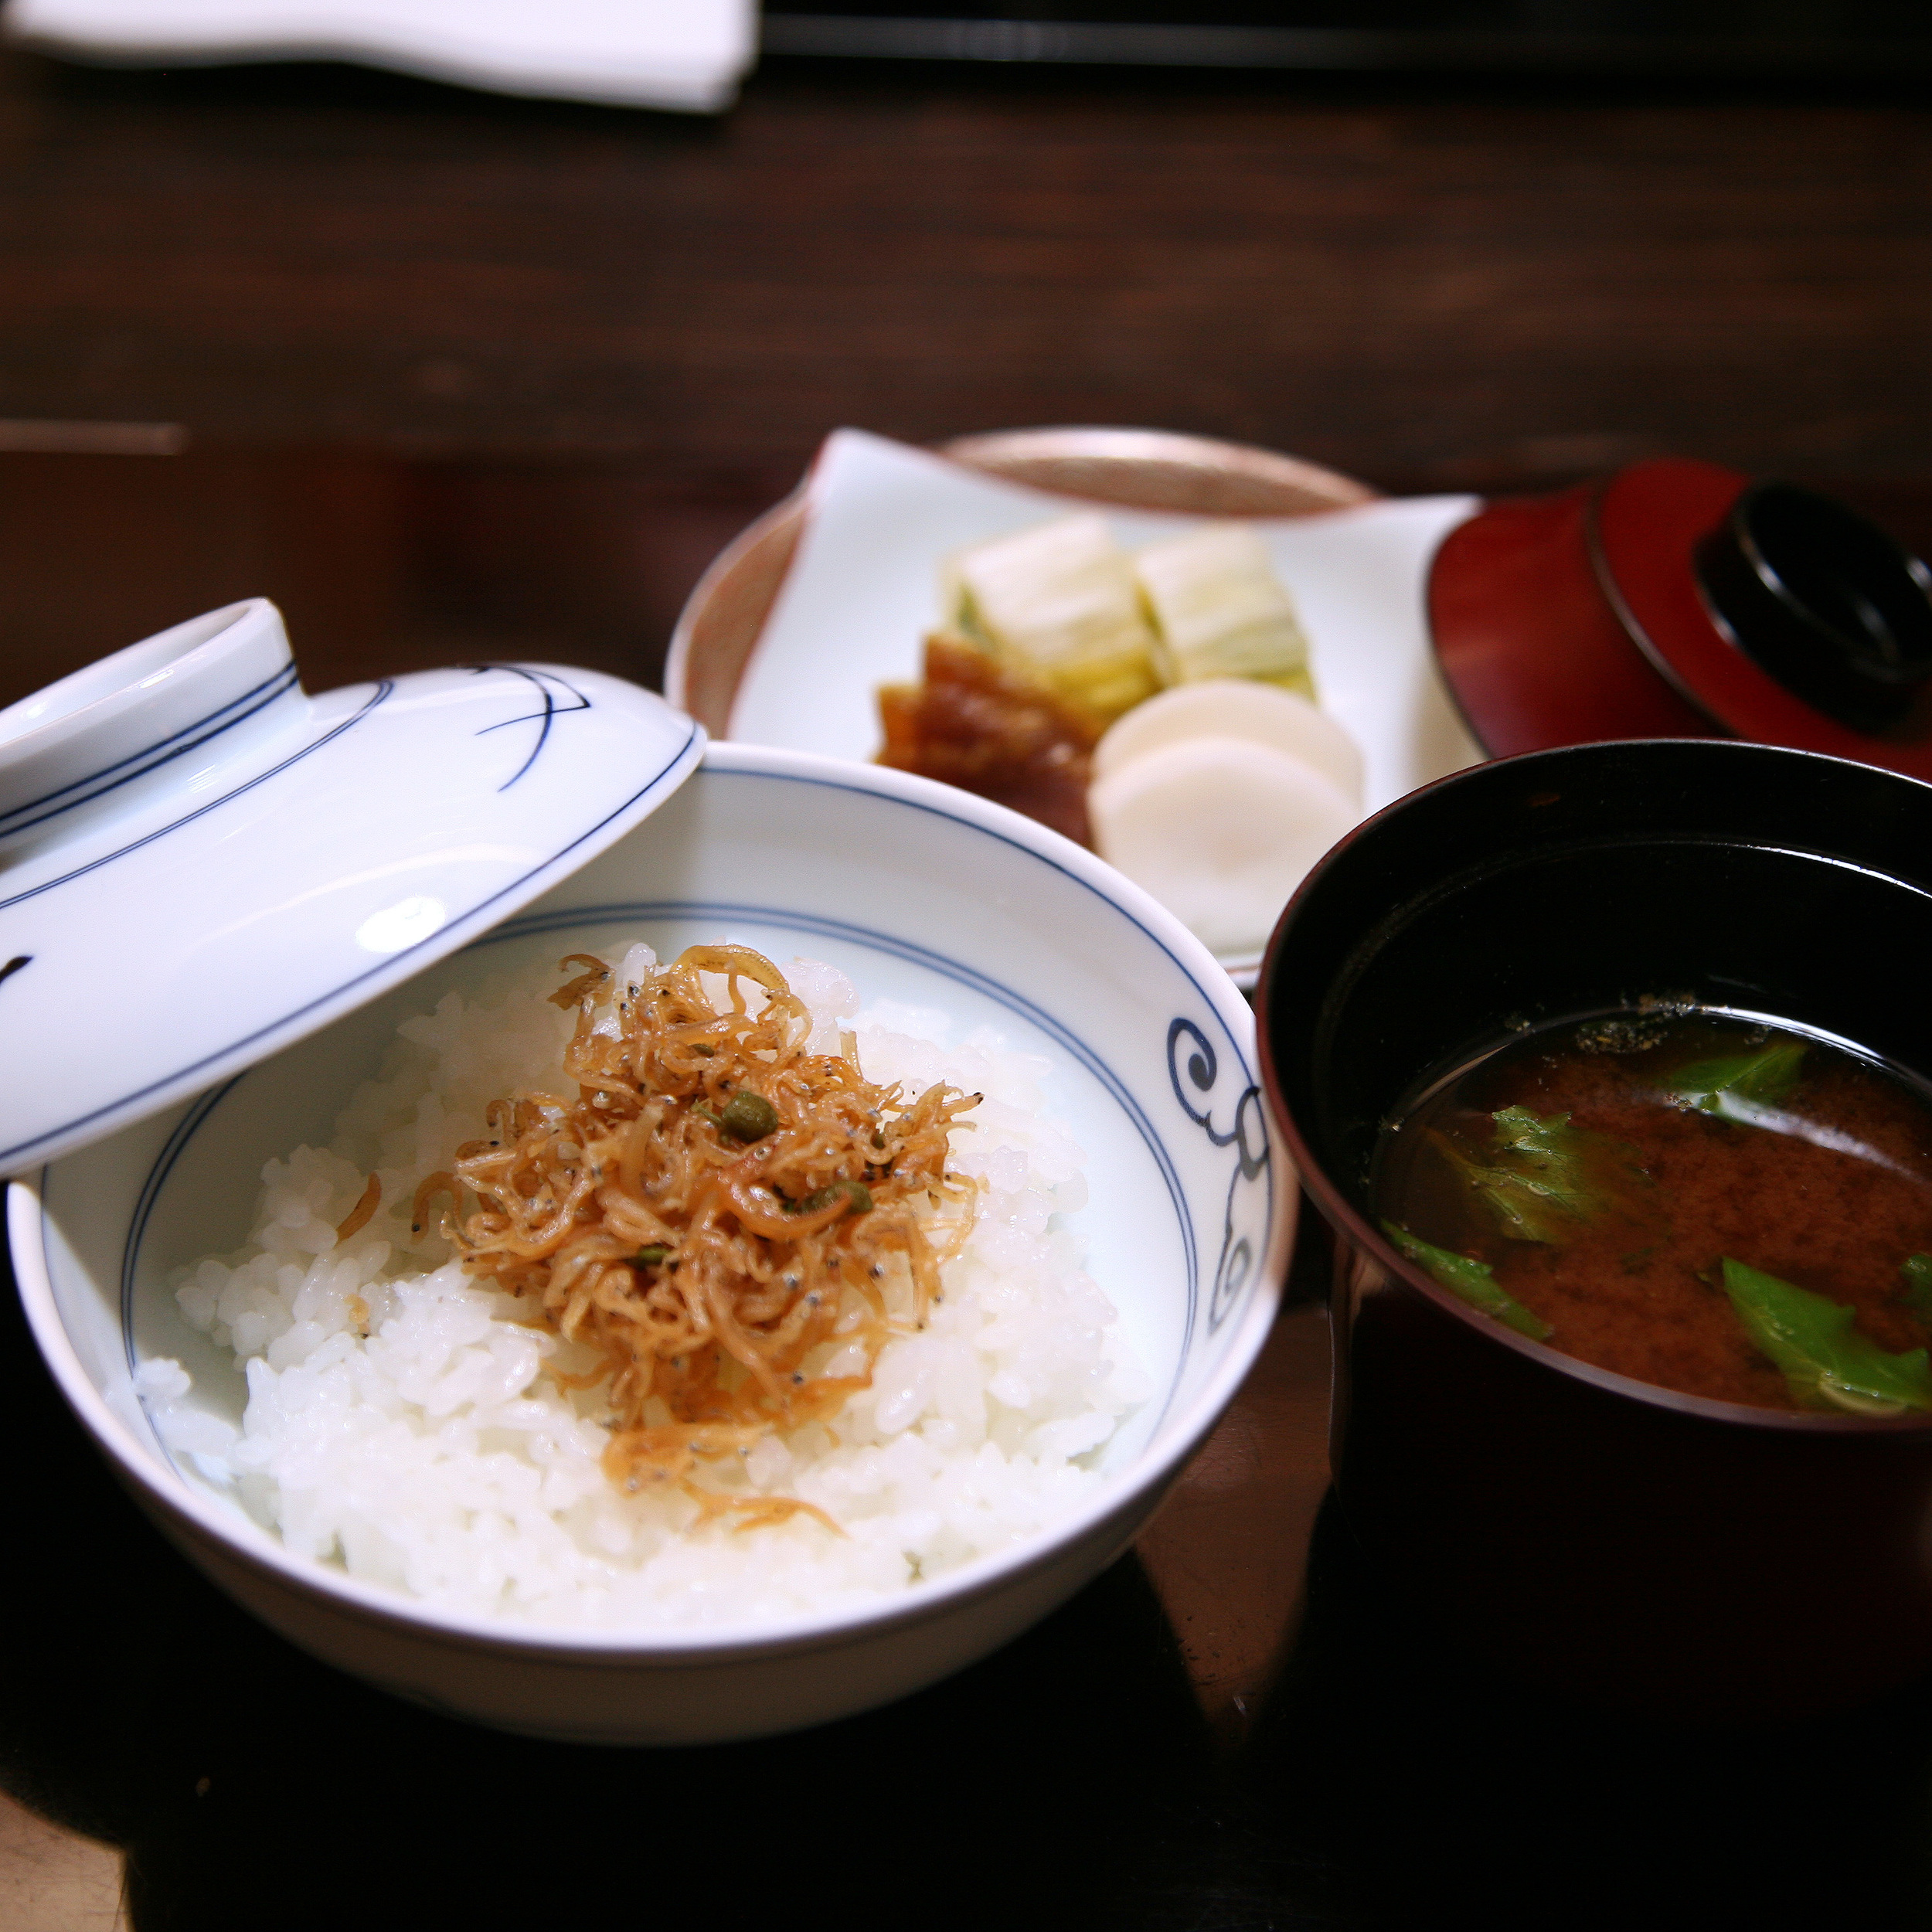 Takamura, Tokyo - Miso soup and rice